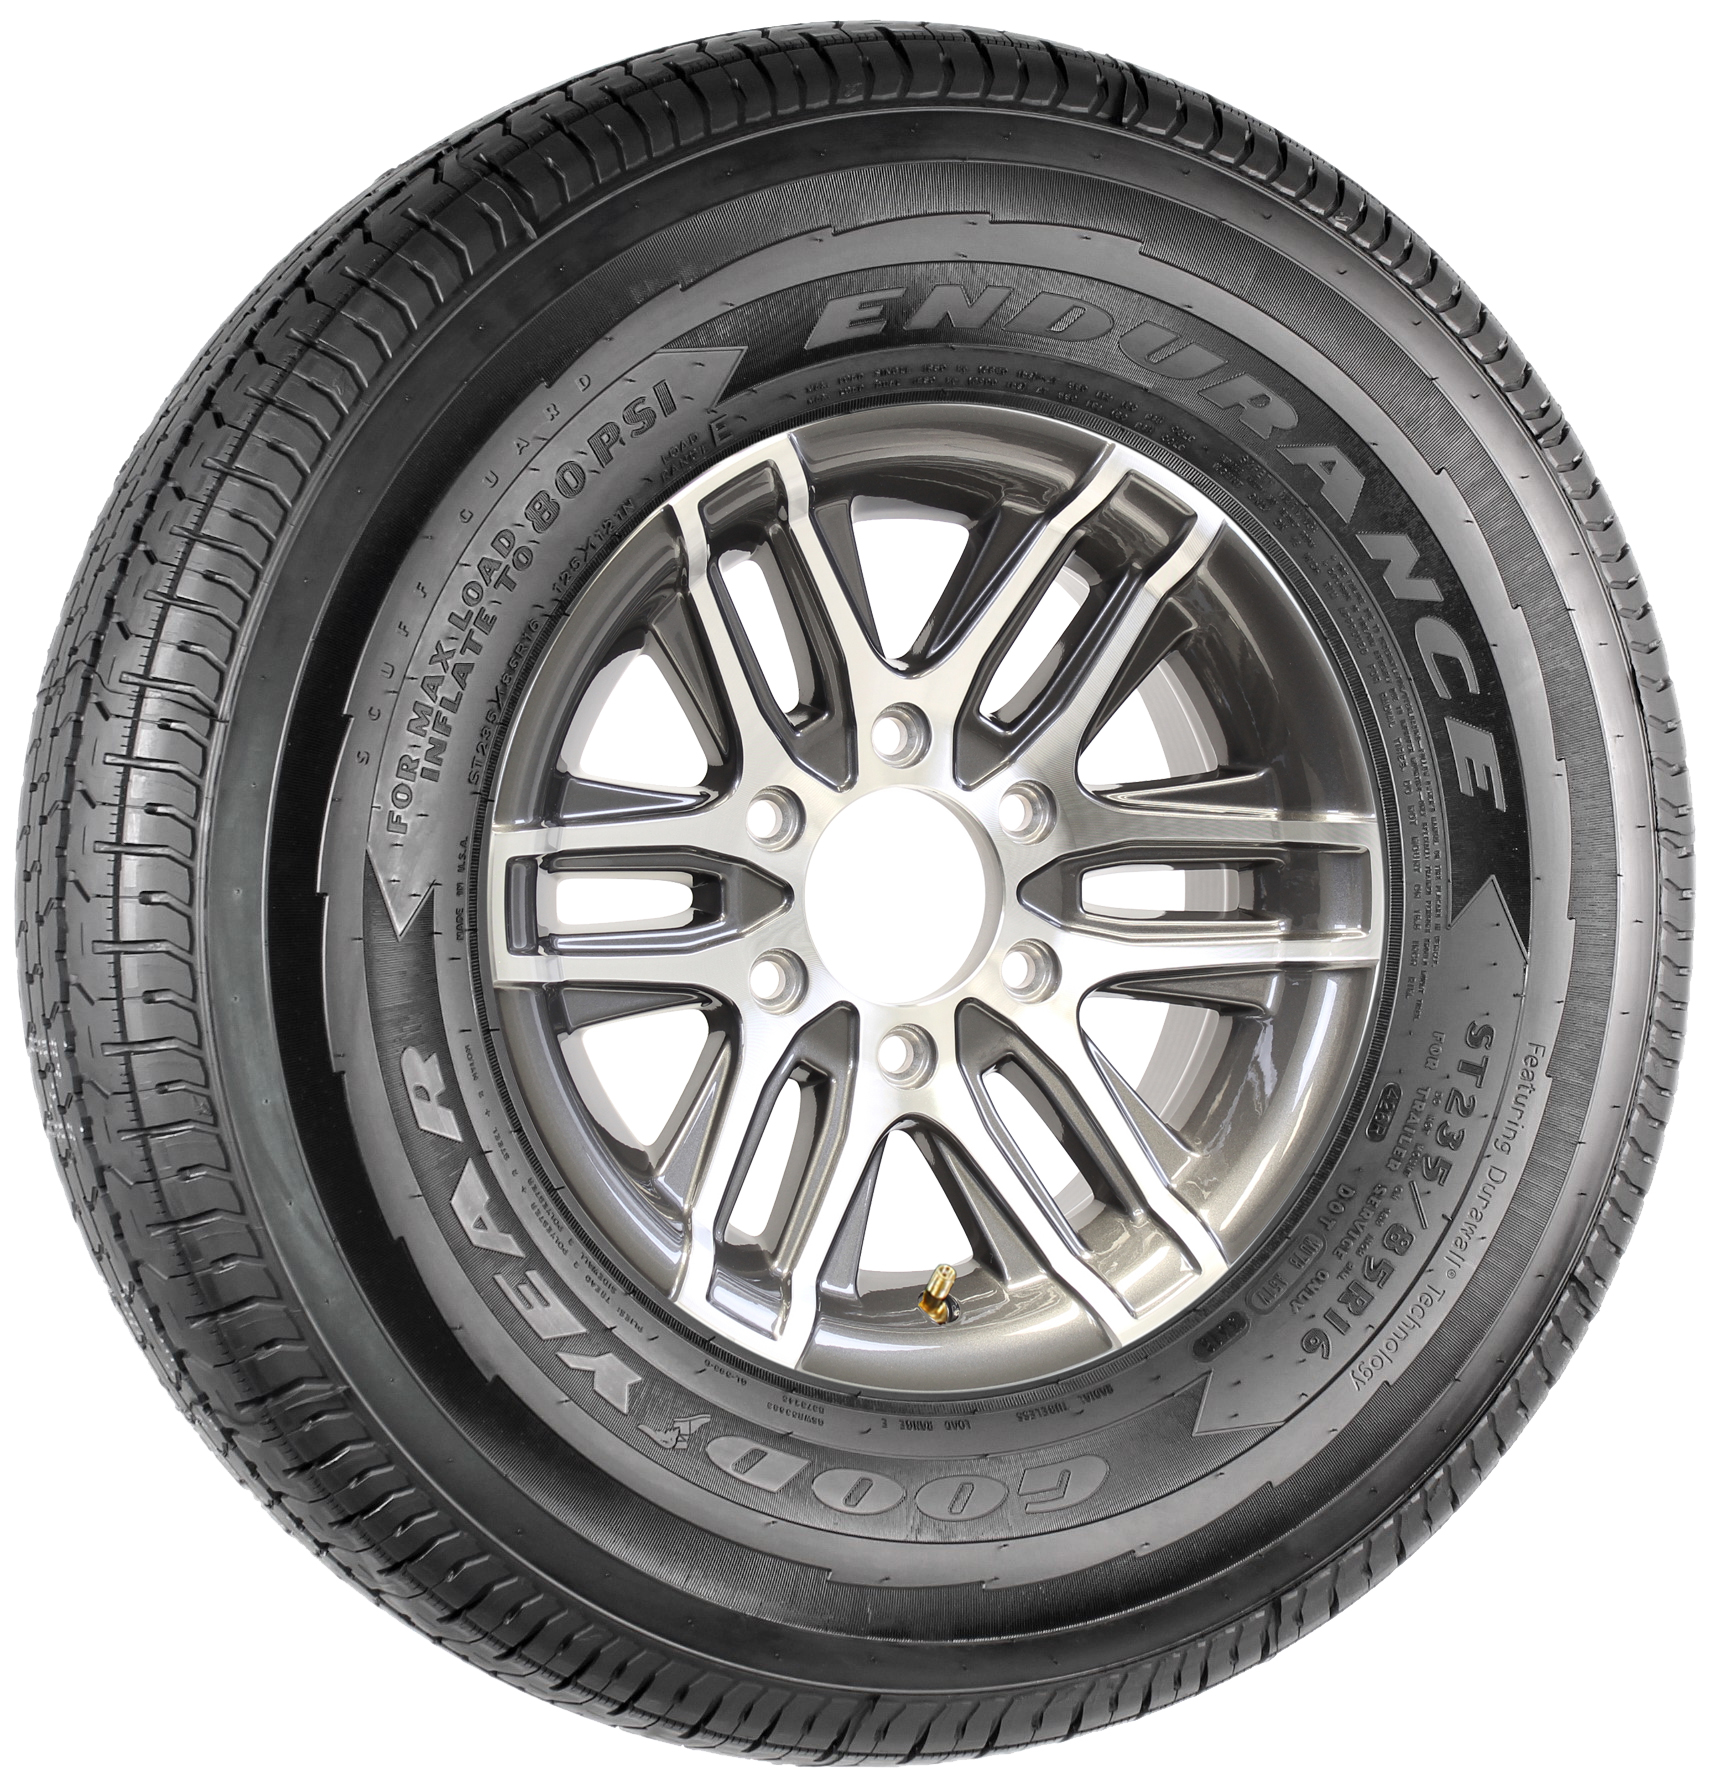 "Goodyear Endurance ST235/85R16 LRE on 16"" 6-5.5 Altitude Gun Metal Aluminum Wheel Image"